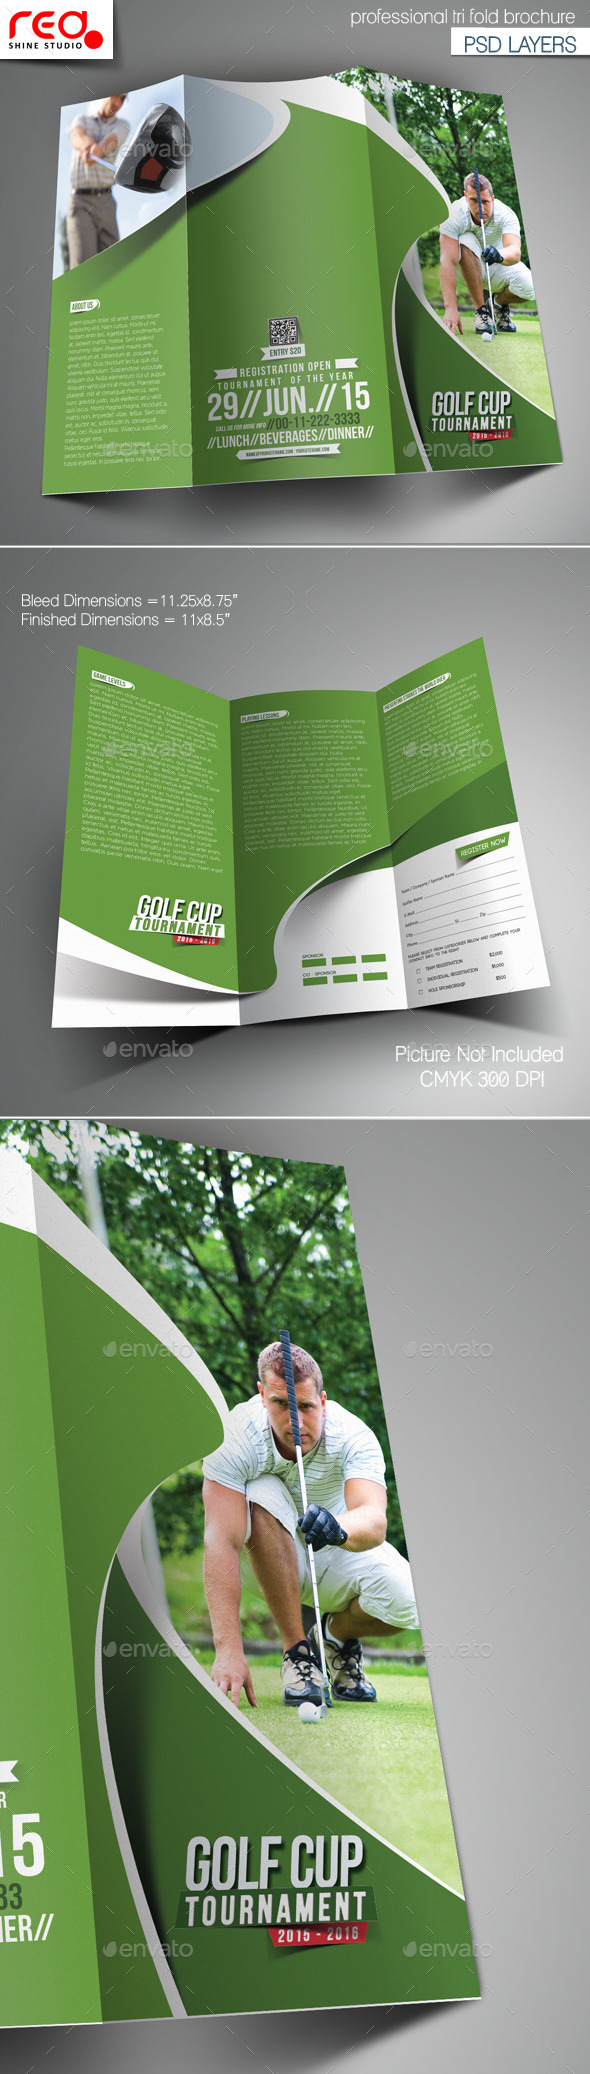 Golf Brochure Graphics Designs Templates From GraphicRiver - Golf brochure templates